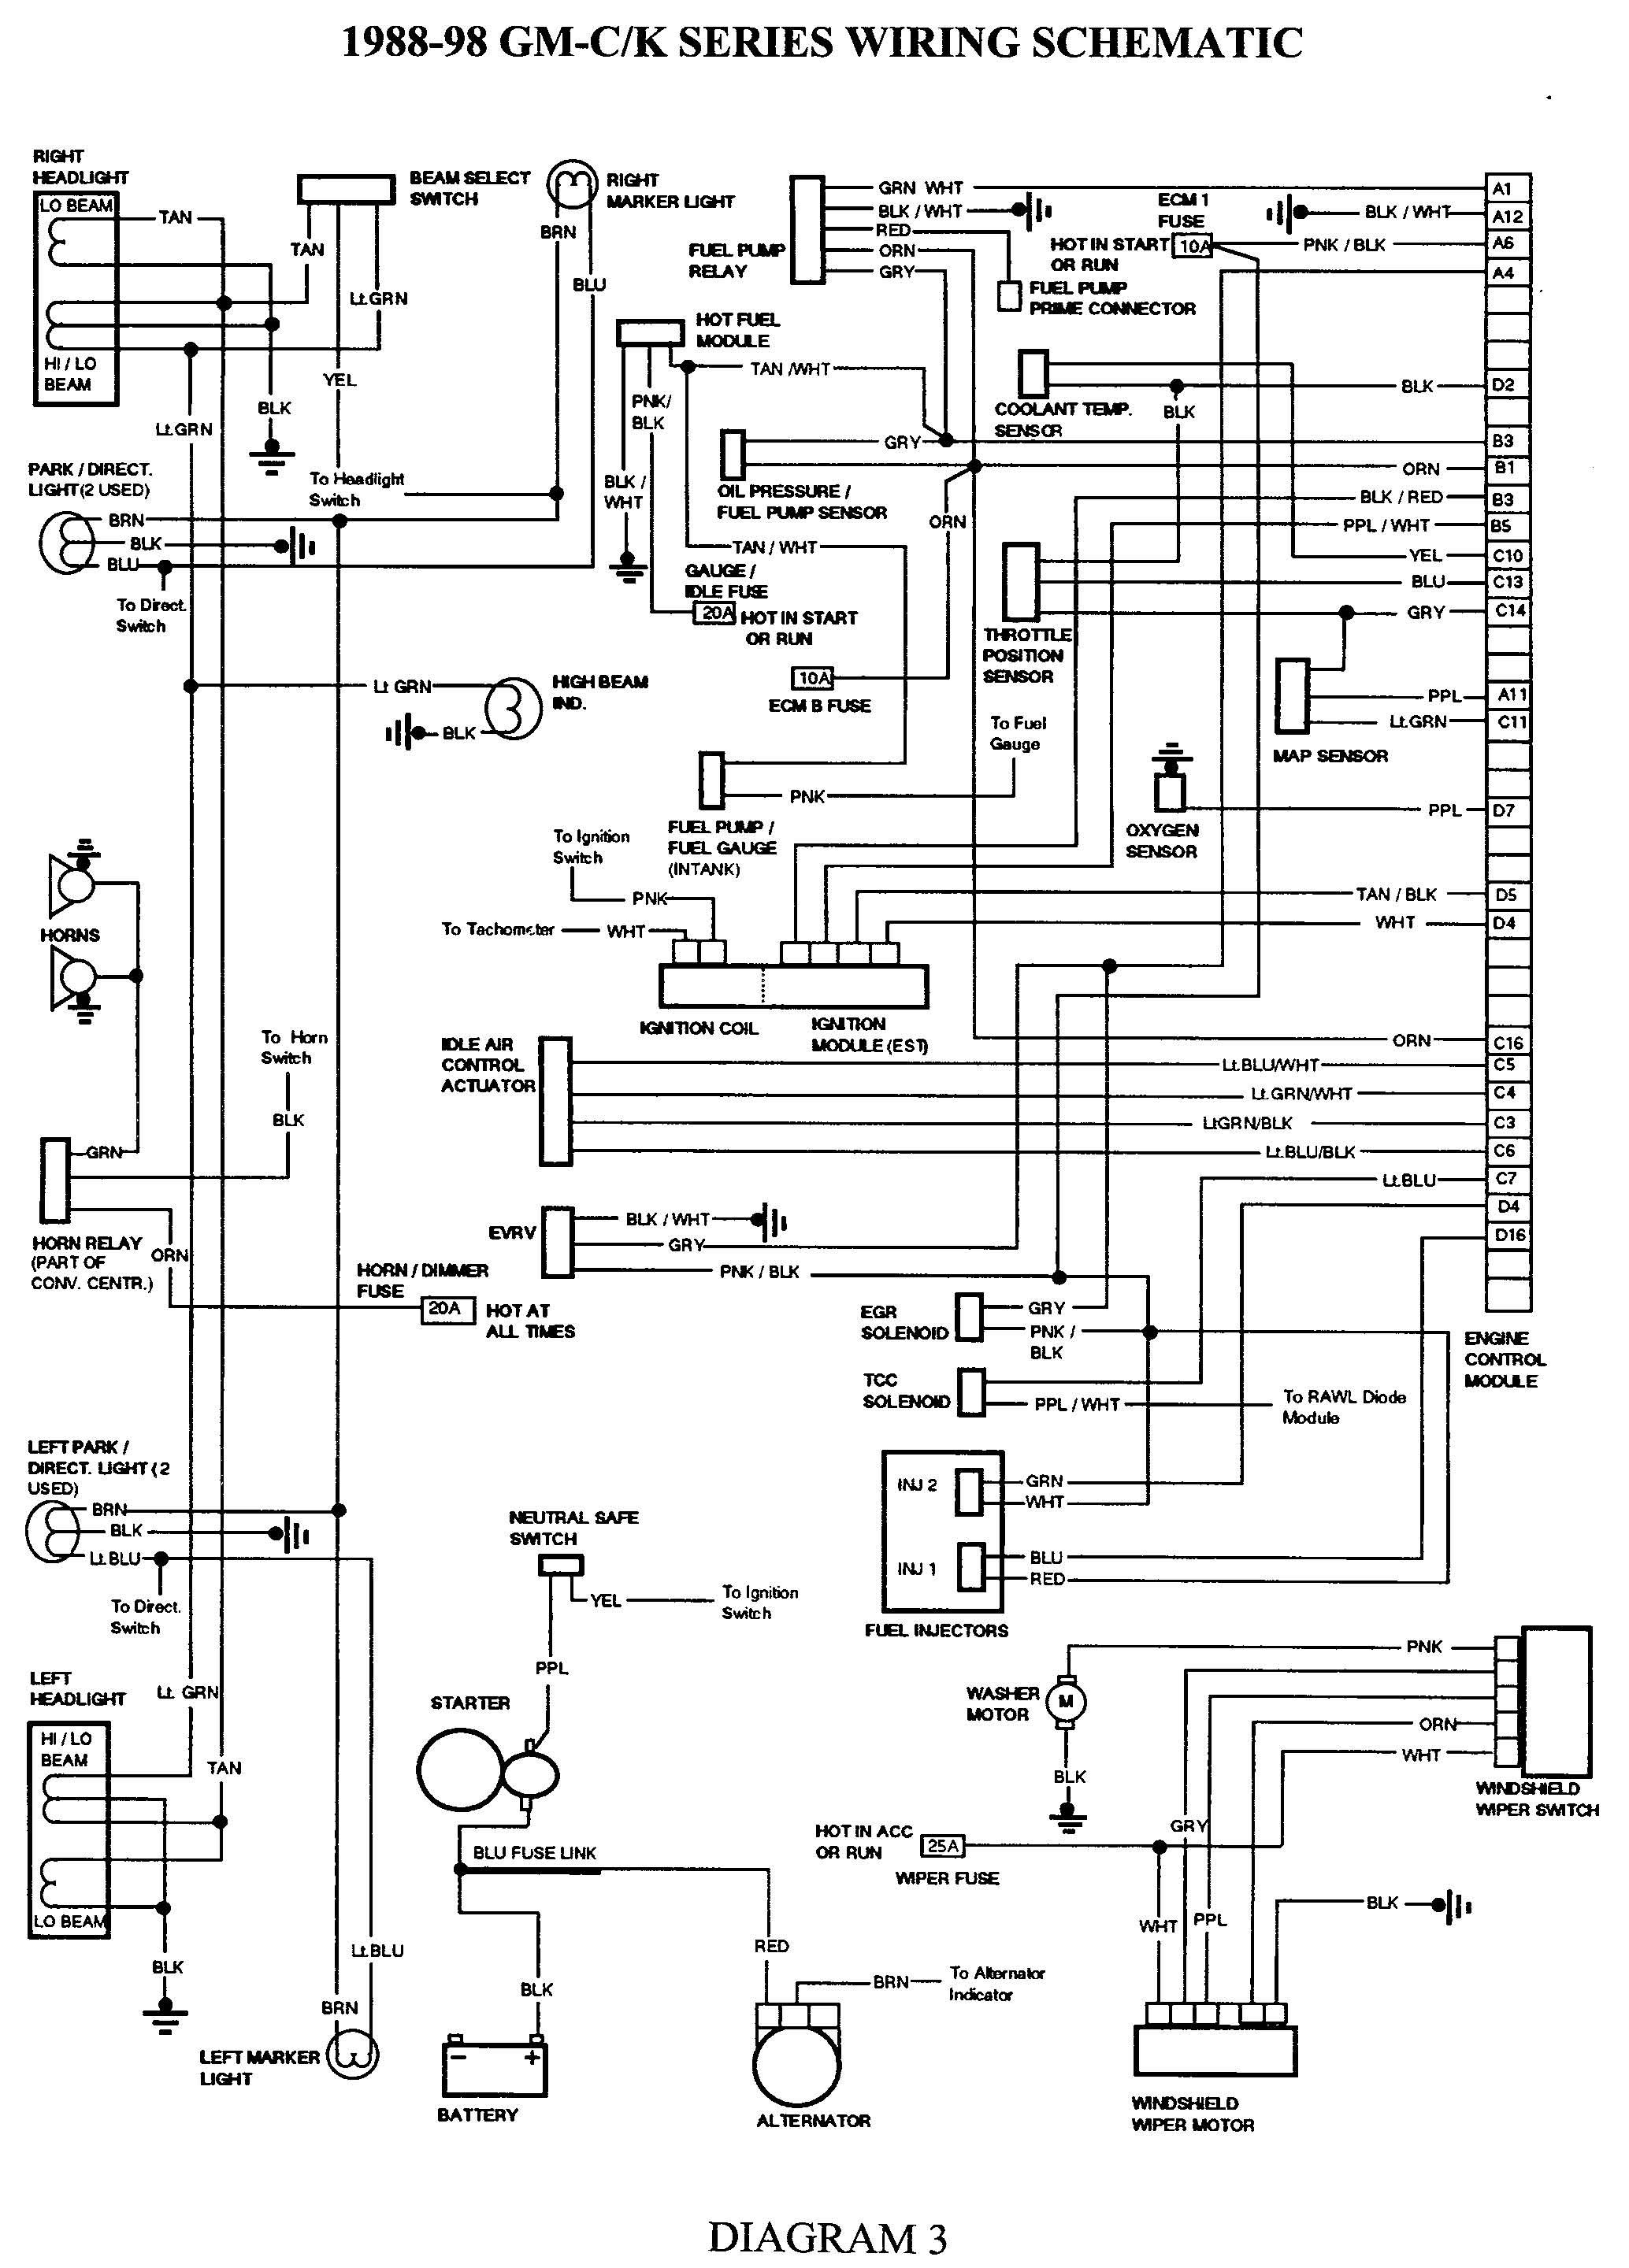 wiring diagram gmc wiring schematics diagram rh mychampagnedaze com 7 Pin Trailer Connector Wiring Diagram 7 Pin Trailer Connector Wiring Diagram